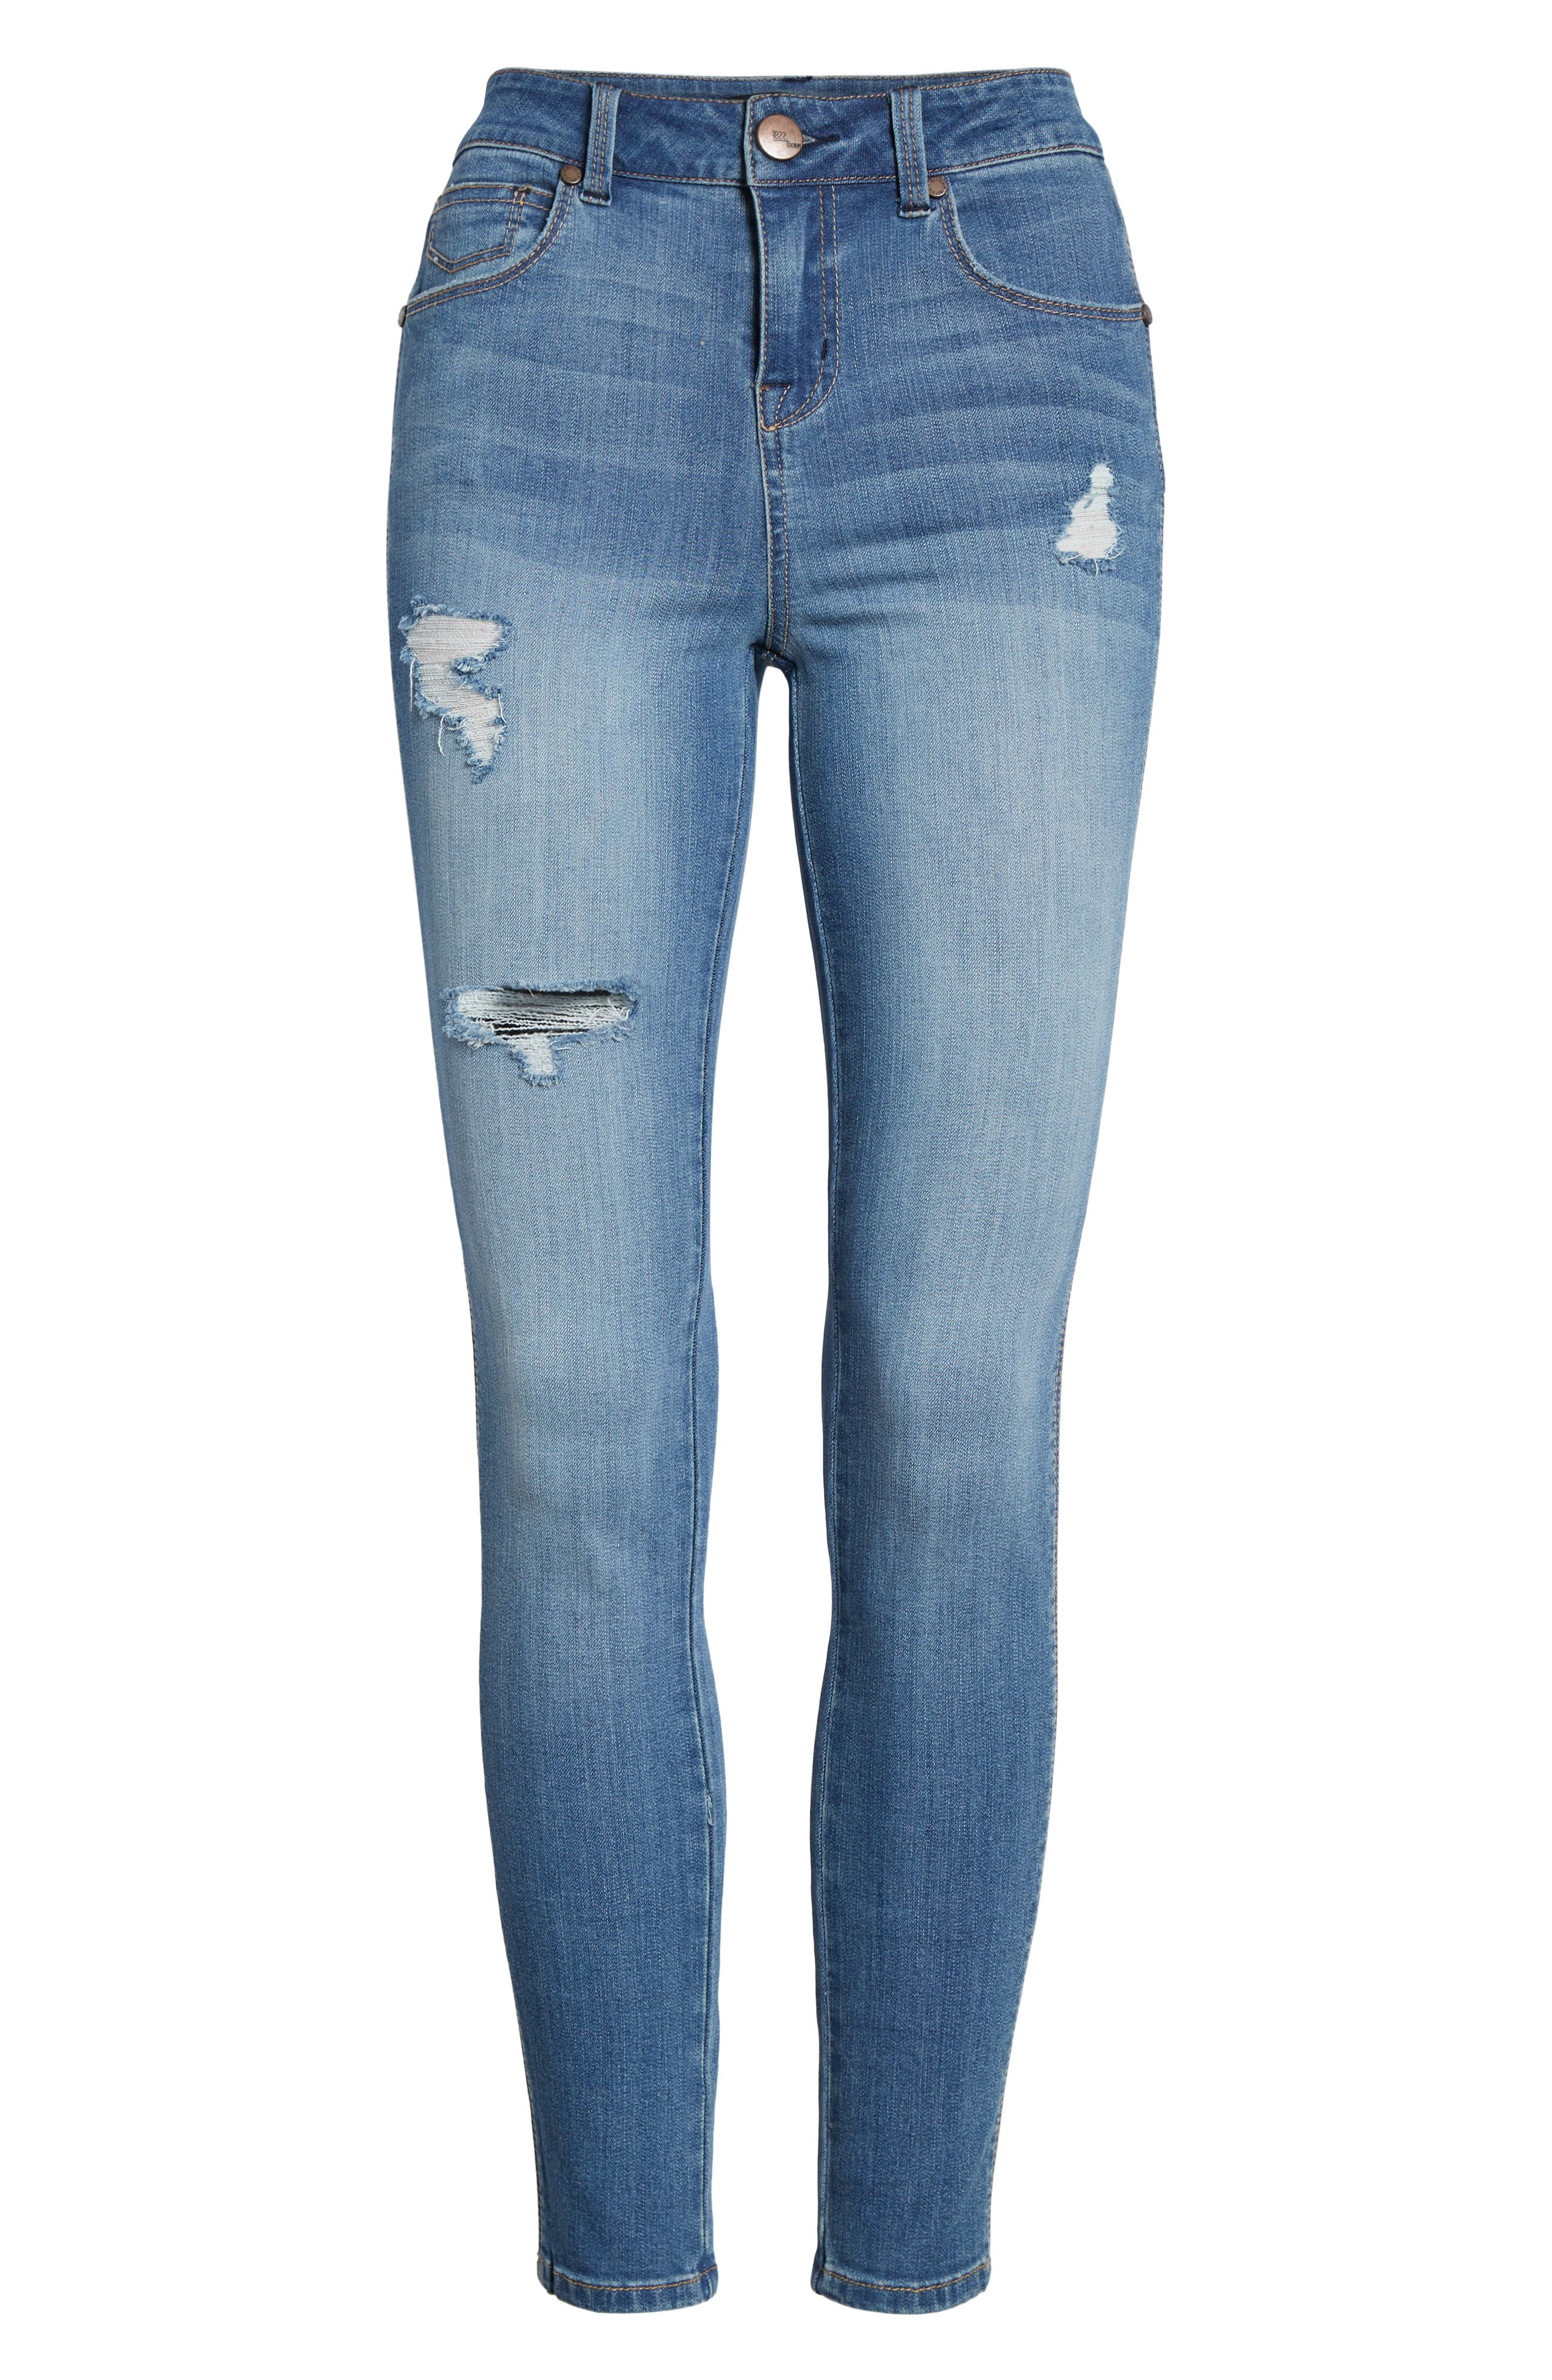 Distressed Skinny Jeans,                             Alternate thumbnail 7, color,                             400